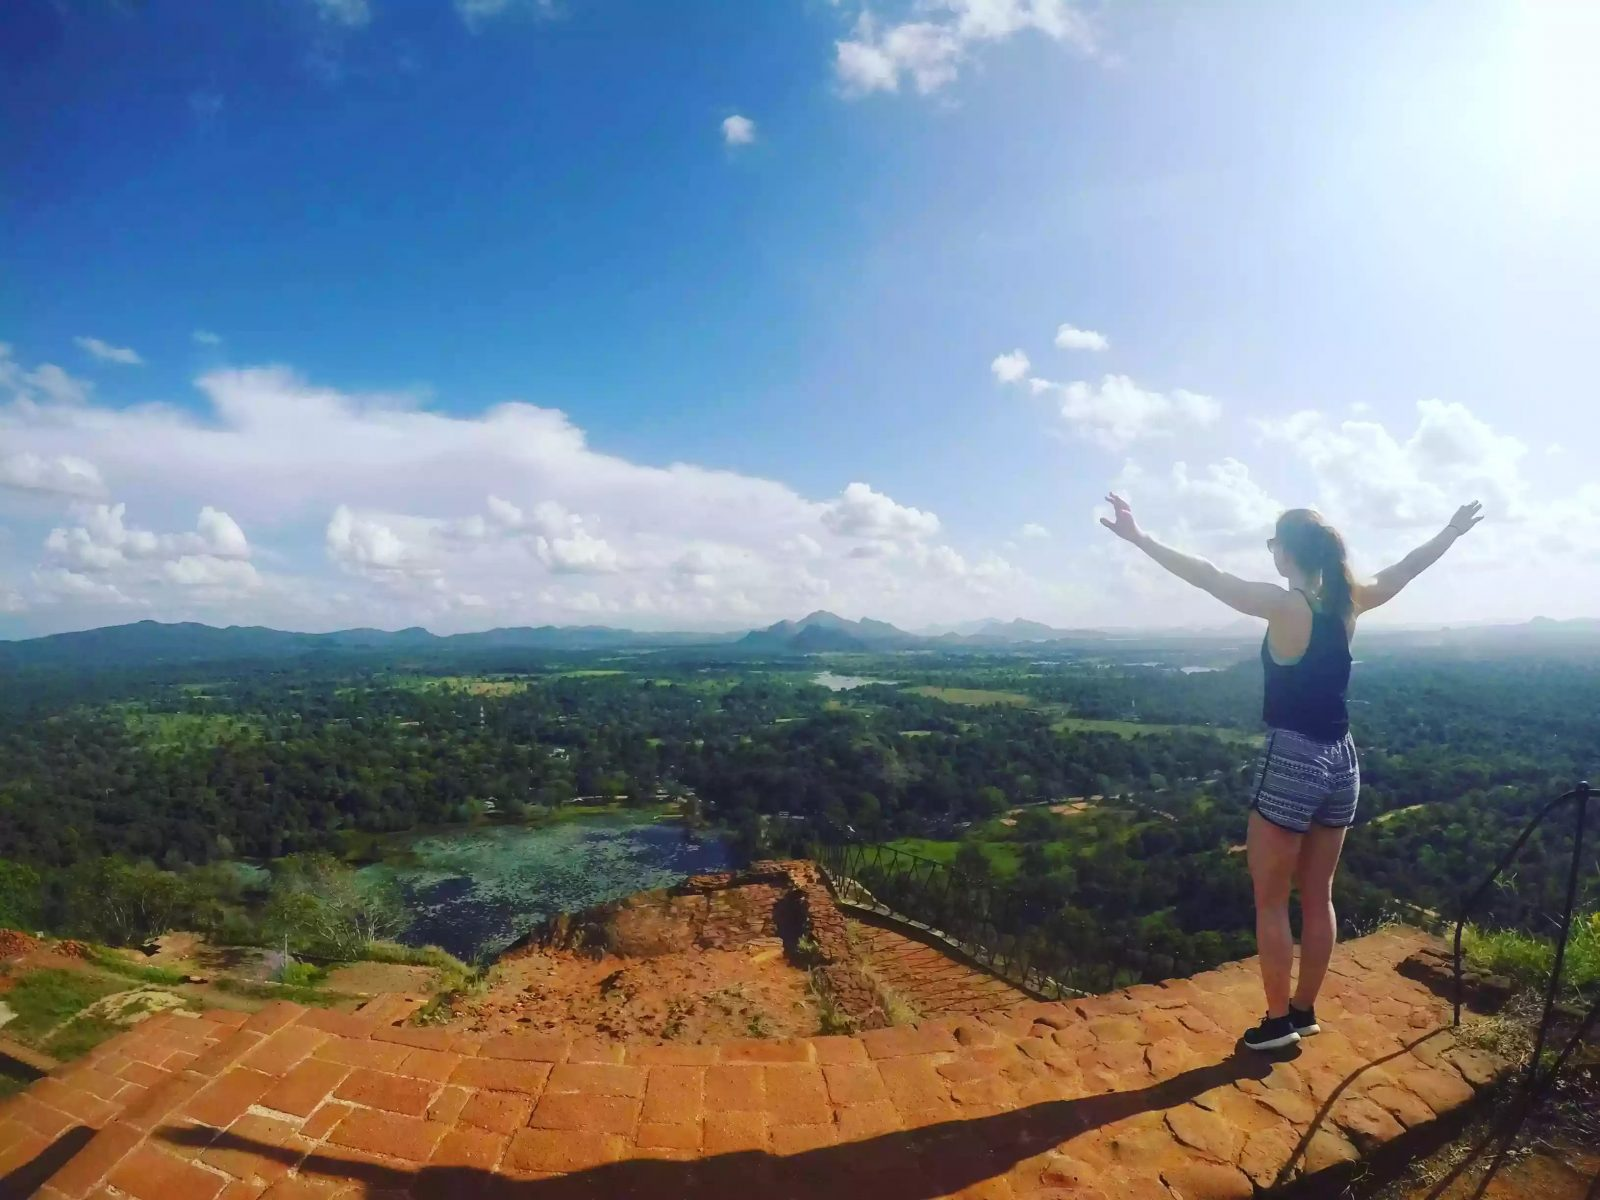 Image of Laura stood at the top of Sigiriya Rock, overlooking a lush green landscape with bright blue skies.